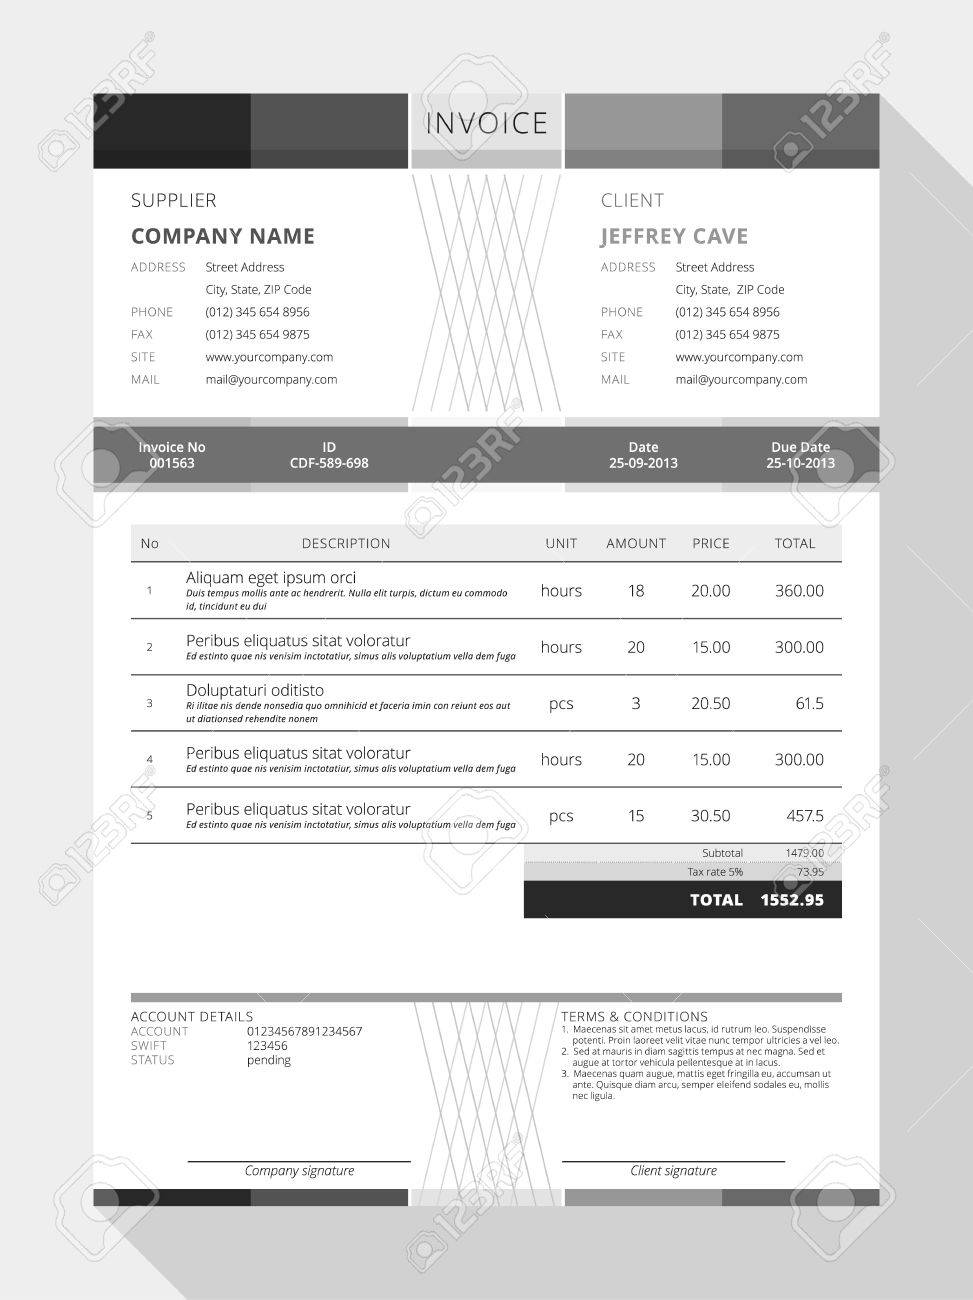 Pxworkoutfreeus  Picturesque Design An Invoice  Professional Graphic Design Invoice  With Remarkable Vector Customizable Invoice Form Template Design Vector   Design An Invoice With Extraordinary Irs Donation Receipt Also Apple Mail Return Receipt In Addition Bearville Receipt Codes And Donation Receipt Sample As Well As Acknowledge The Receipt Of This Email Additionally How To Make Receipt From Happytomco With Pxworkoutfreeus  Remarkable Design An Invoice  Professional Graphic Design Invoice  With Extraordinary Vector Customizable Invoice Form Template Design Vector   Design An Invoice And Picturesque Irs Donation Receipt Also Apple Mail Return Receipt In Addition Bearville Receipt Codes From Happytomco